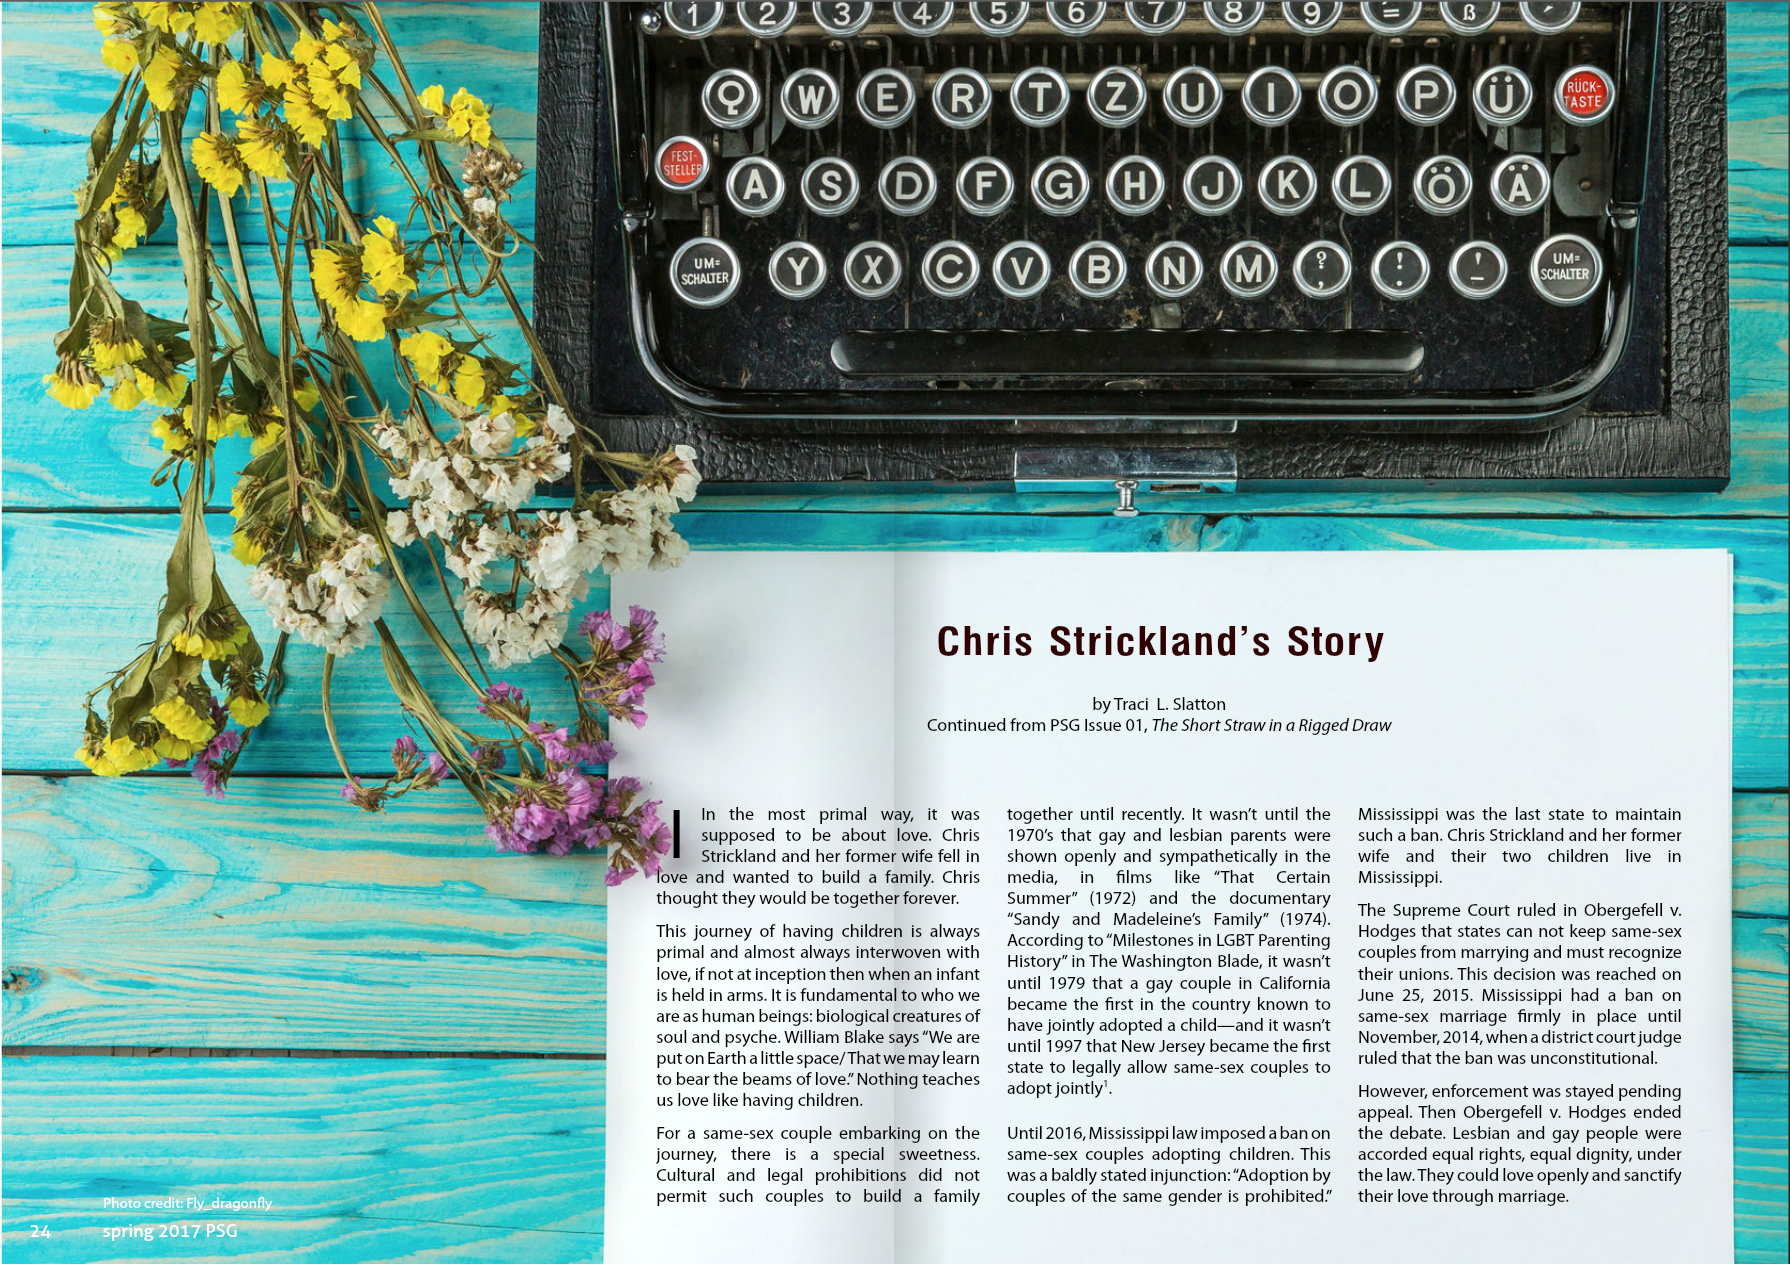 Chris Strickland's story